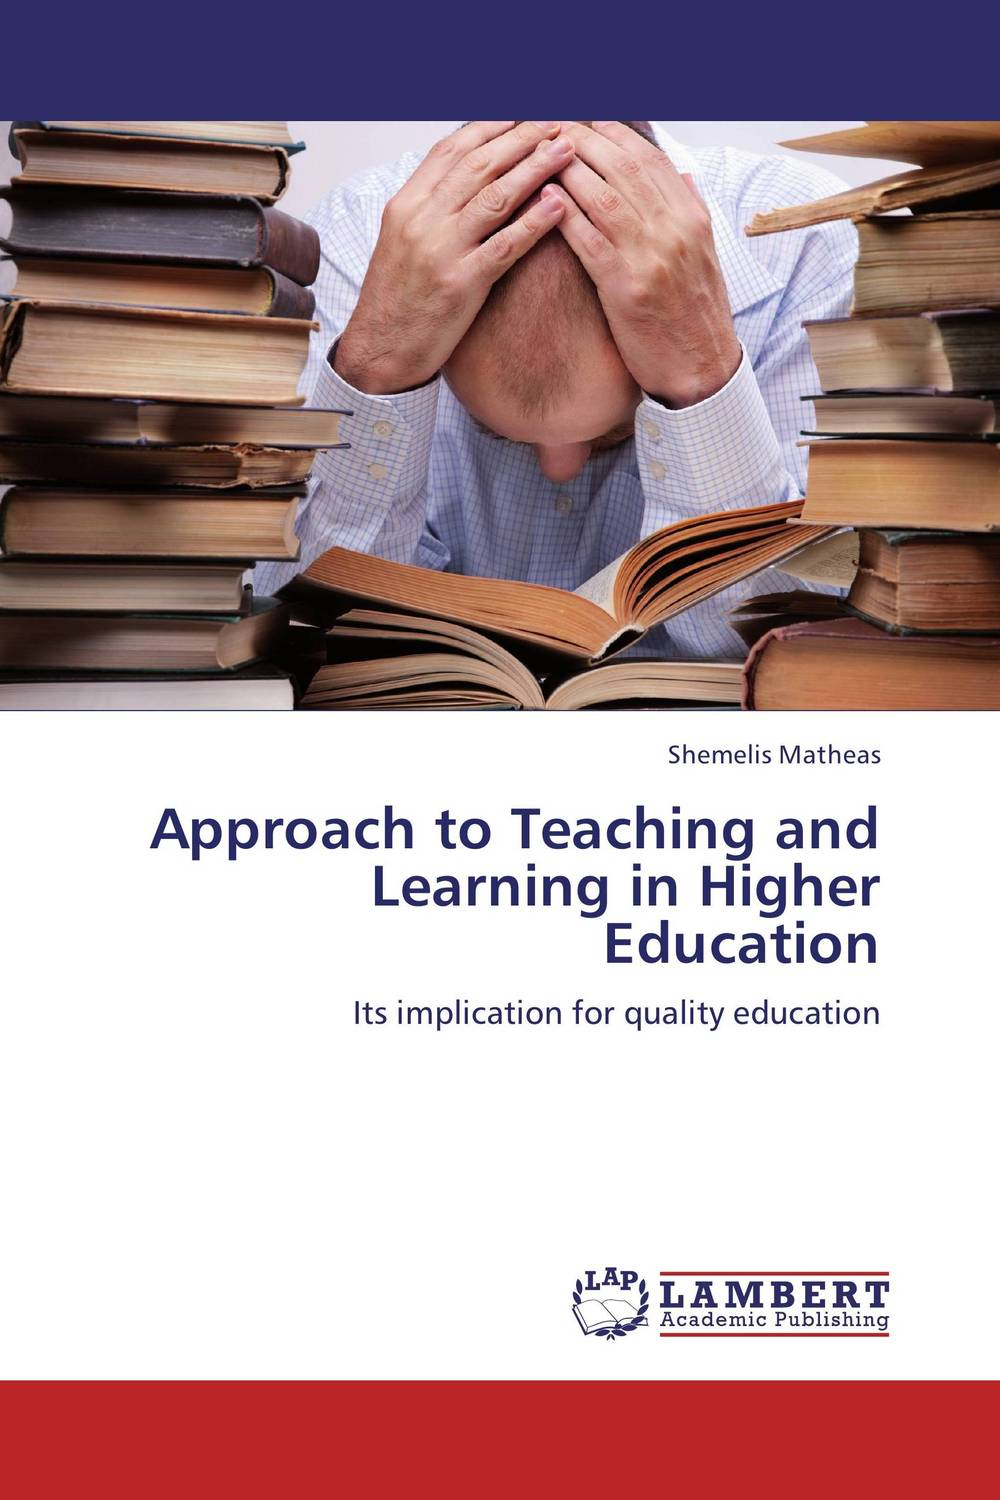 Approach to Teaching and Learning in Higher Education dimitrios stergiou good teaching in tourism higher education